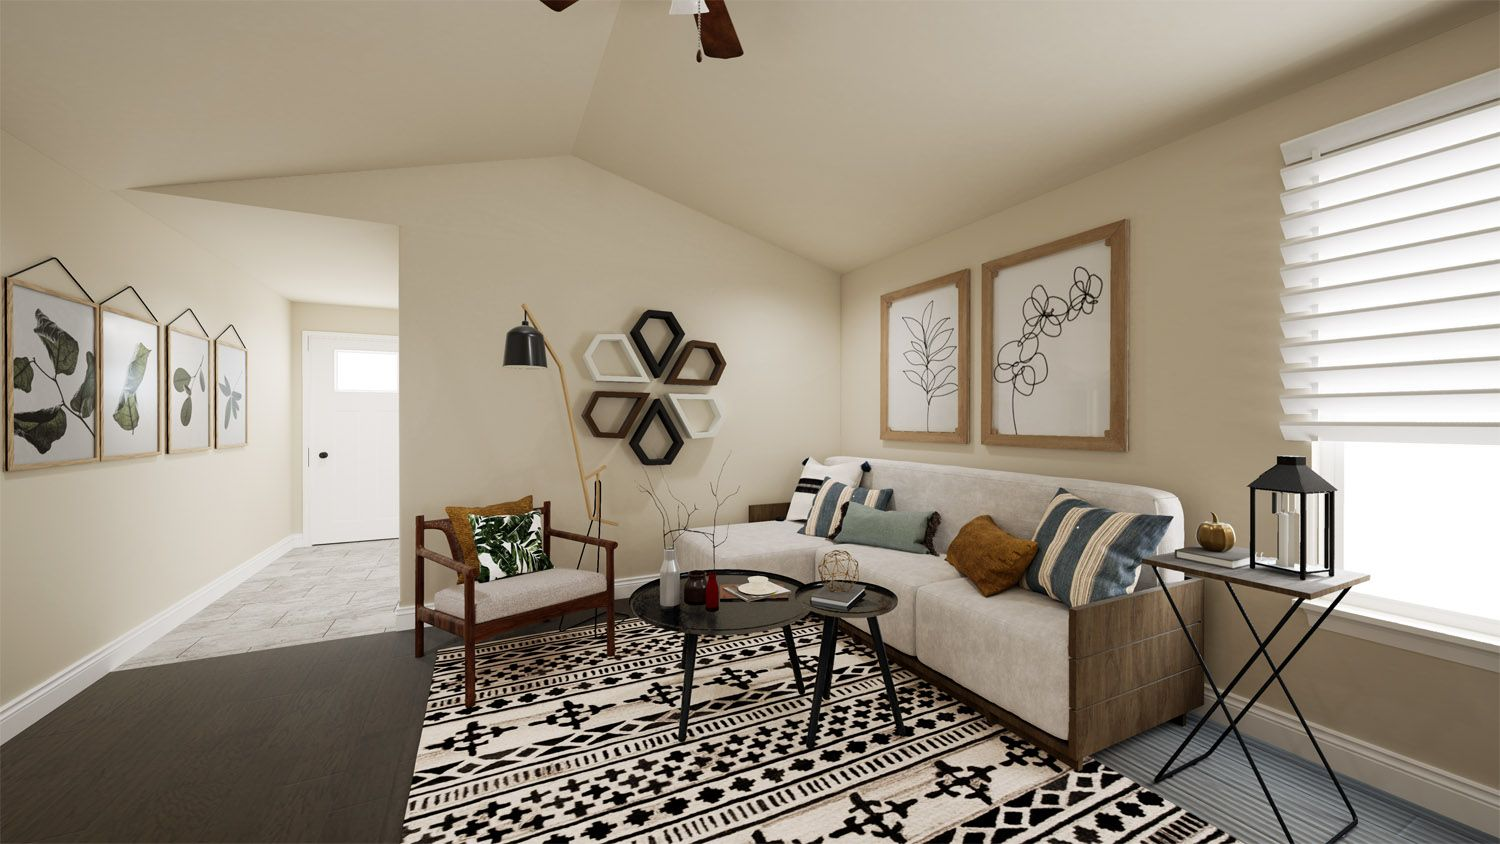 Living Area featured in the 1400-4 Series By Schuber Mitchell Homes in Joplin, MO